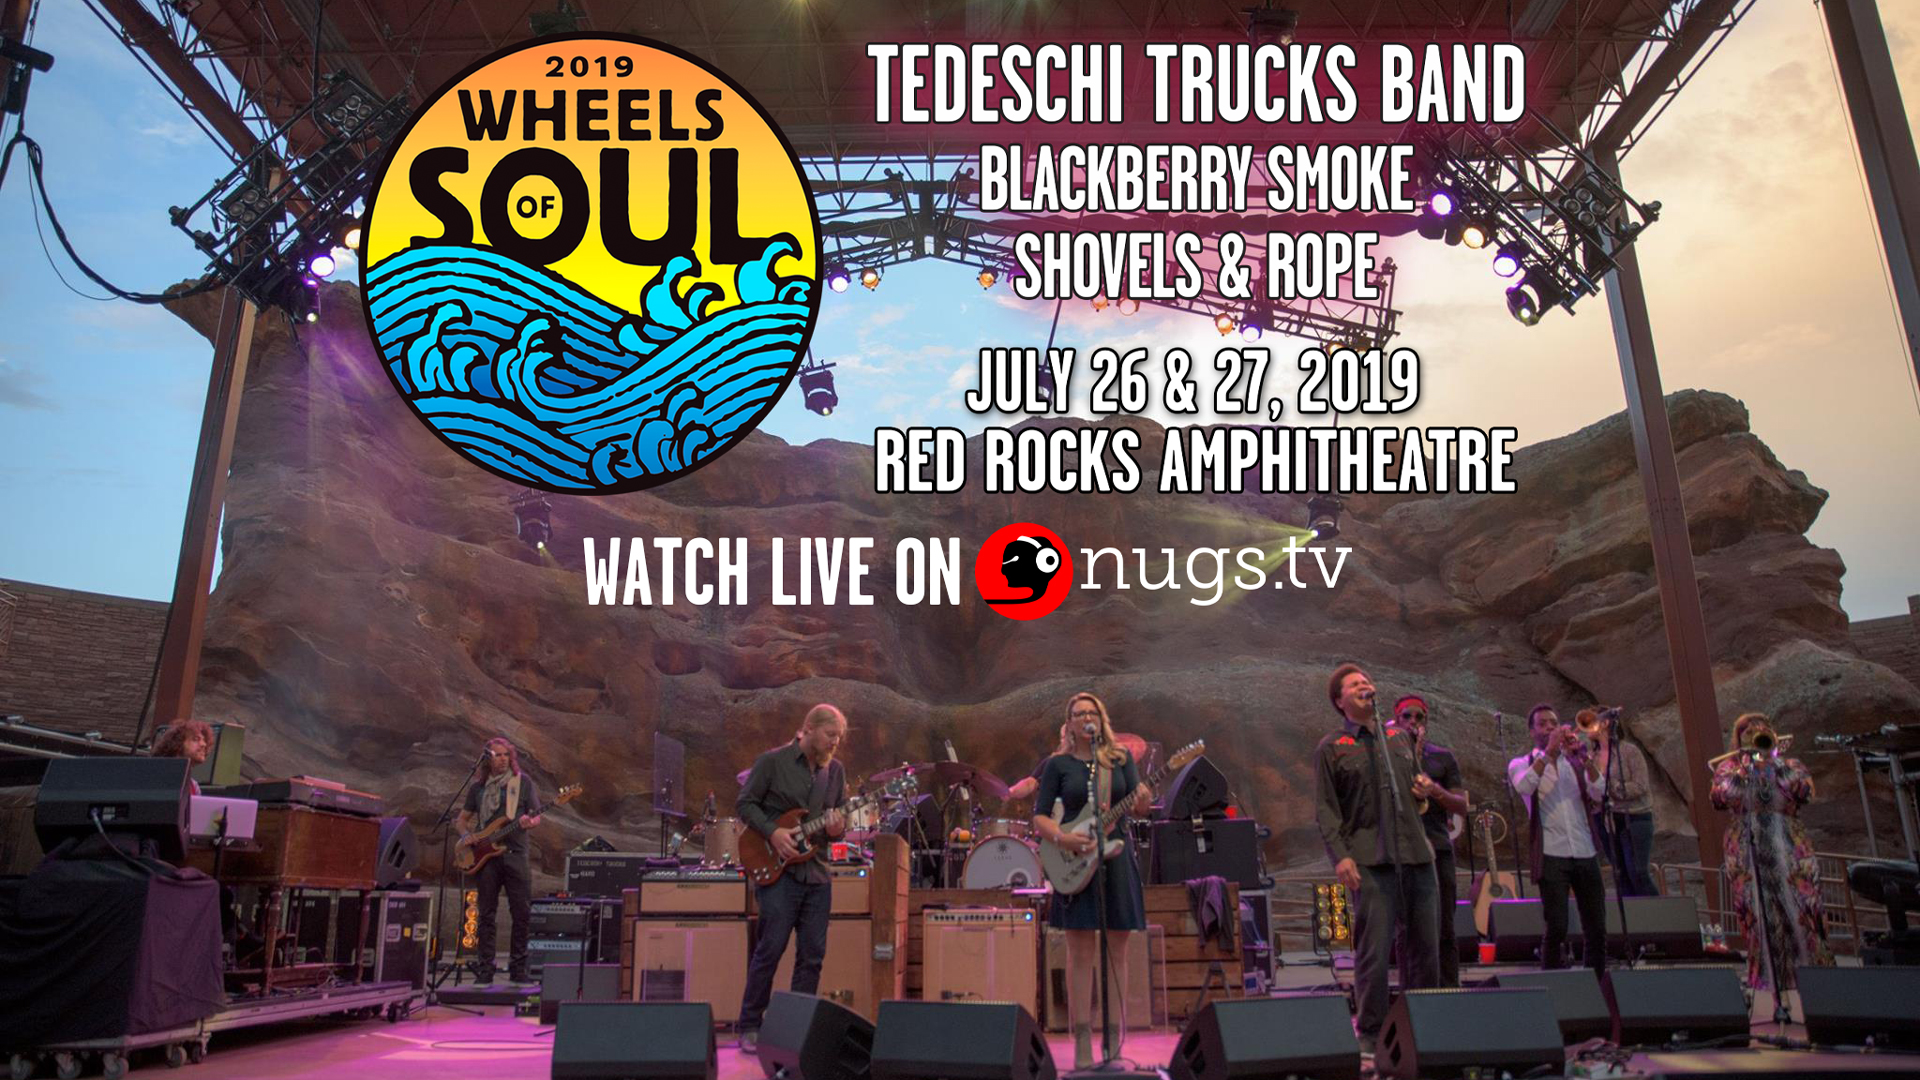 Wheels of Soul Webcast - Live From Red Rocks